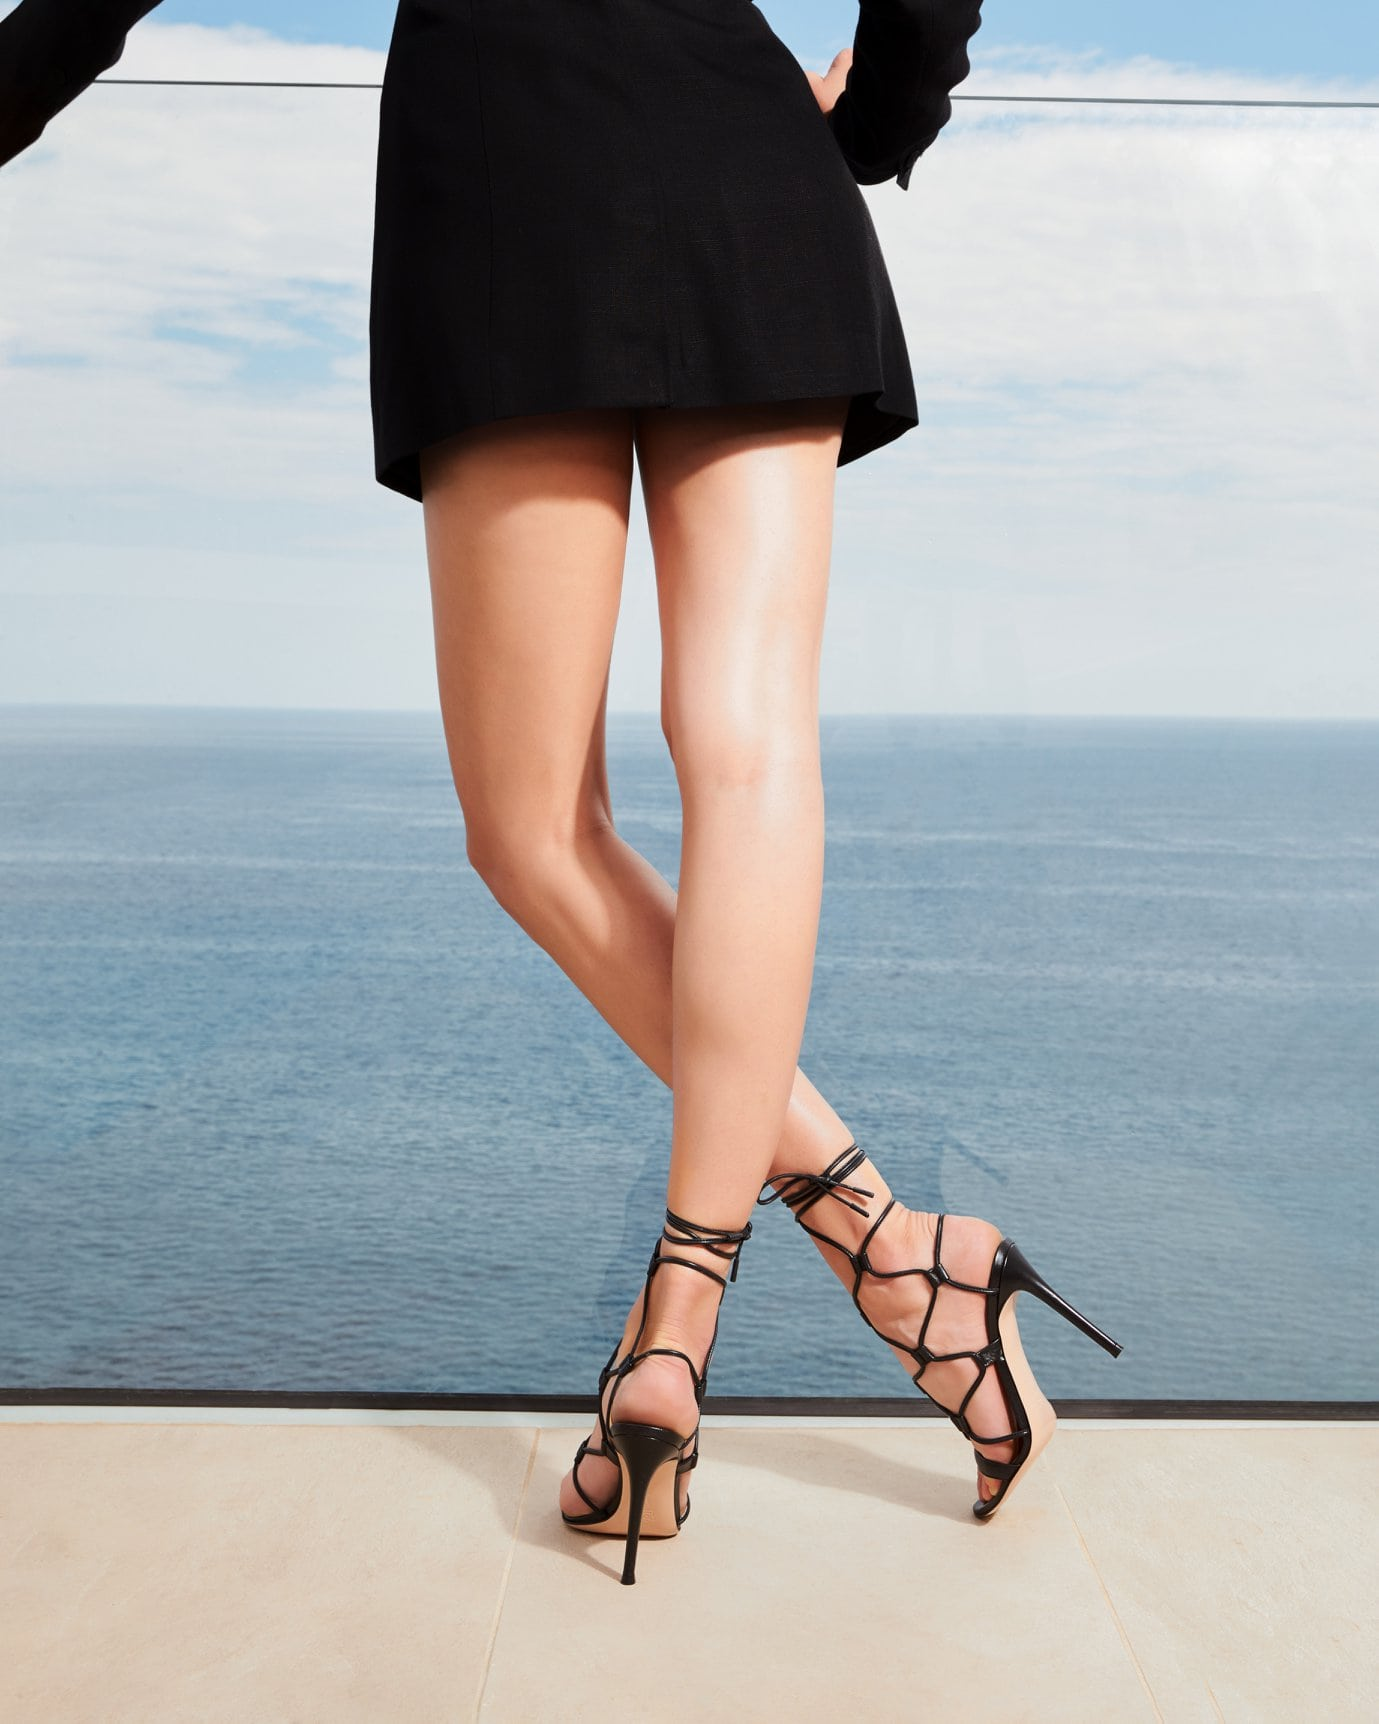 Named after the Egyptian city of Giza, these Gianvito Rossi sandals are guaranteed to attract a lot of attention this summer